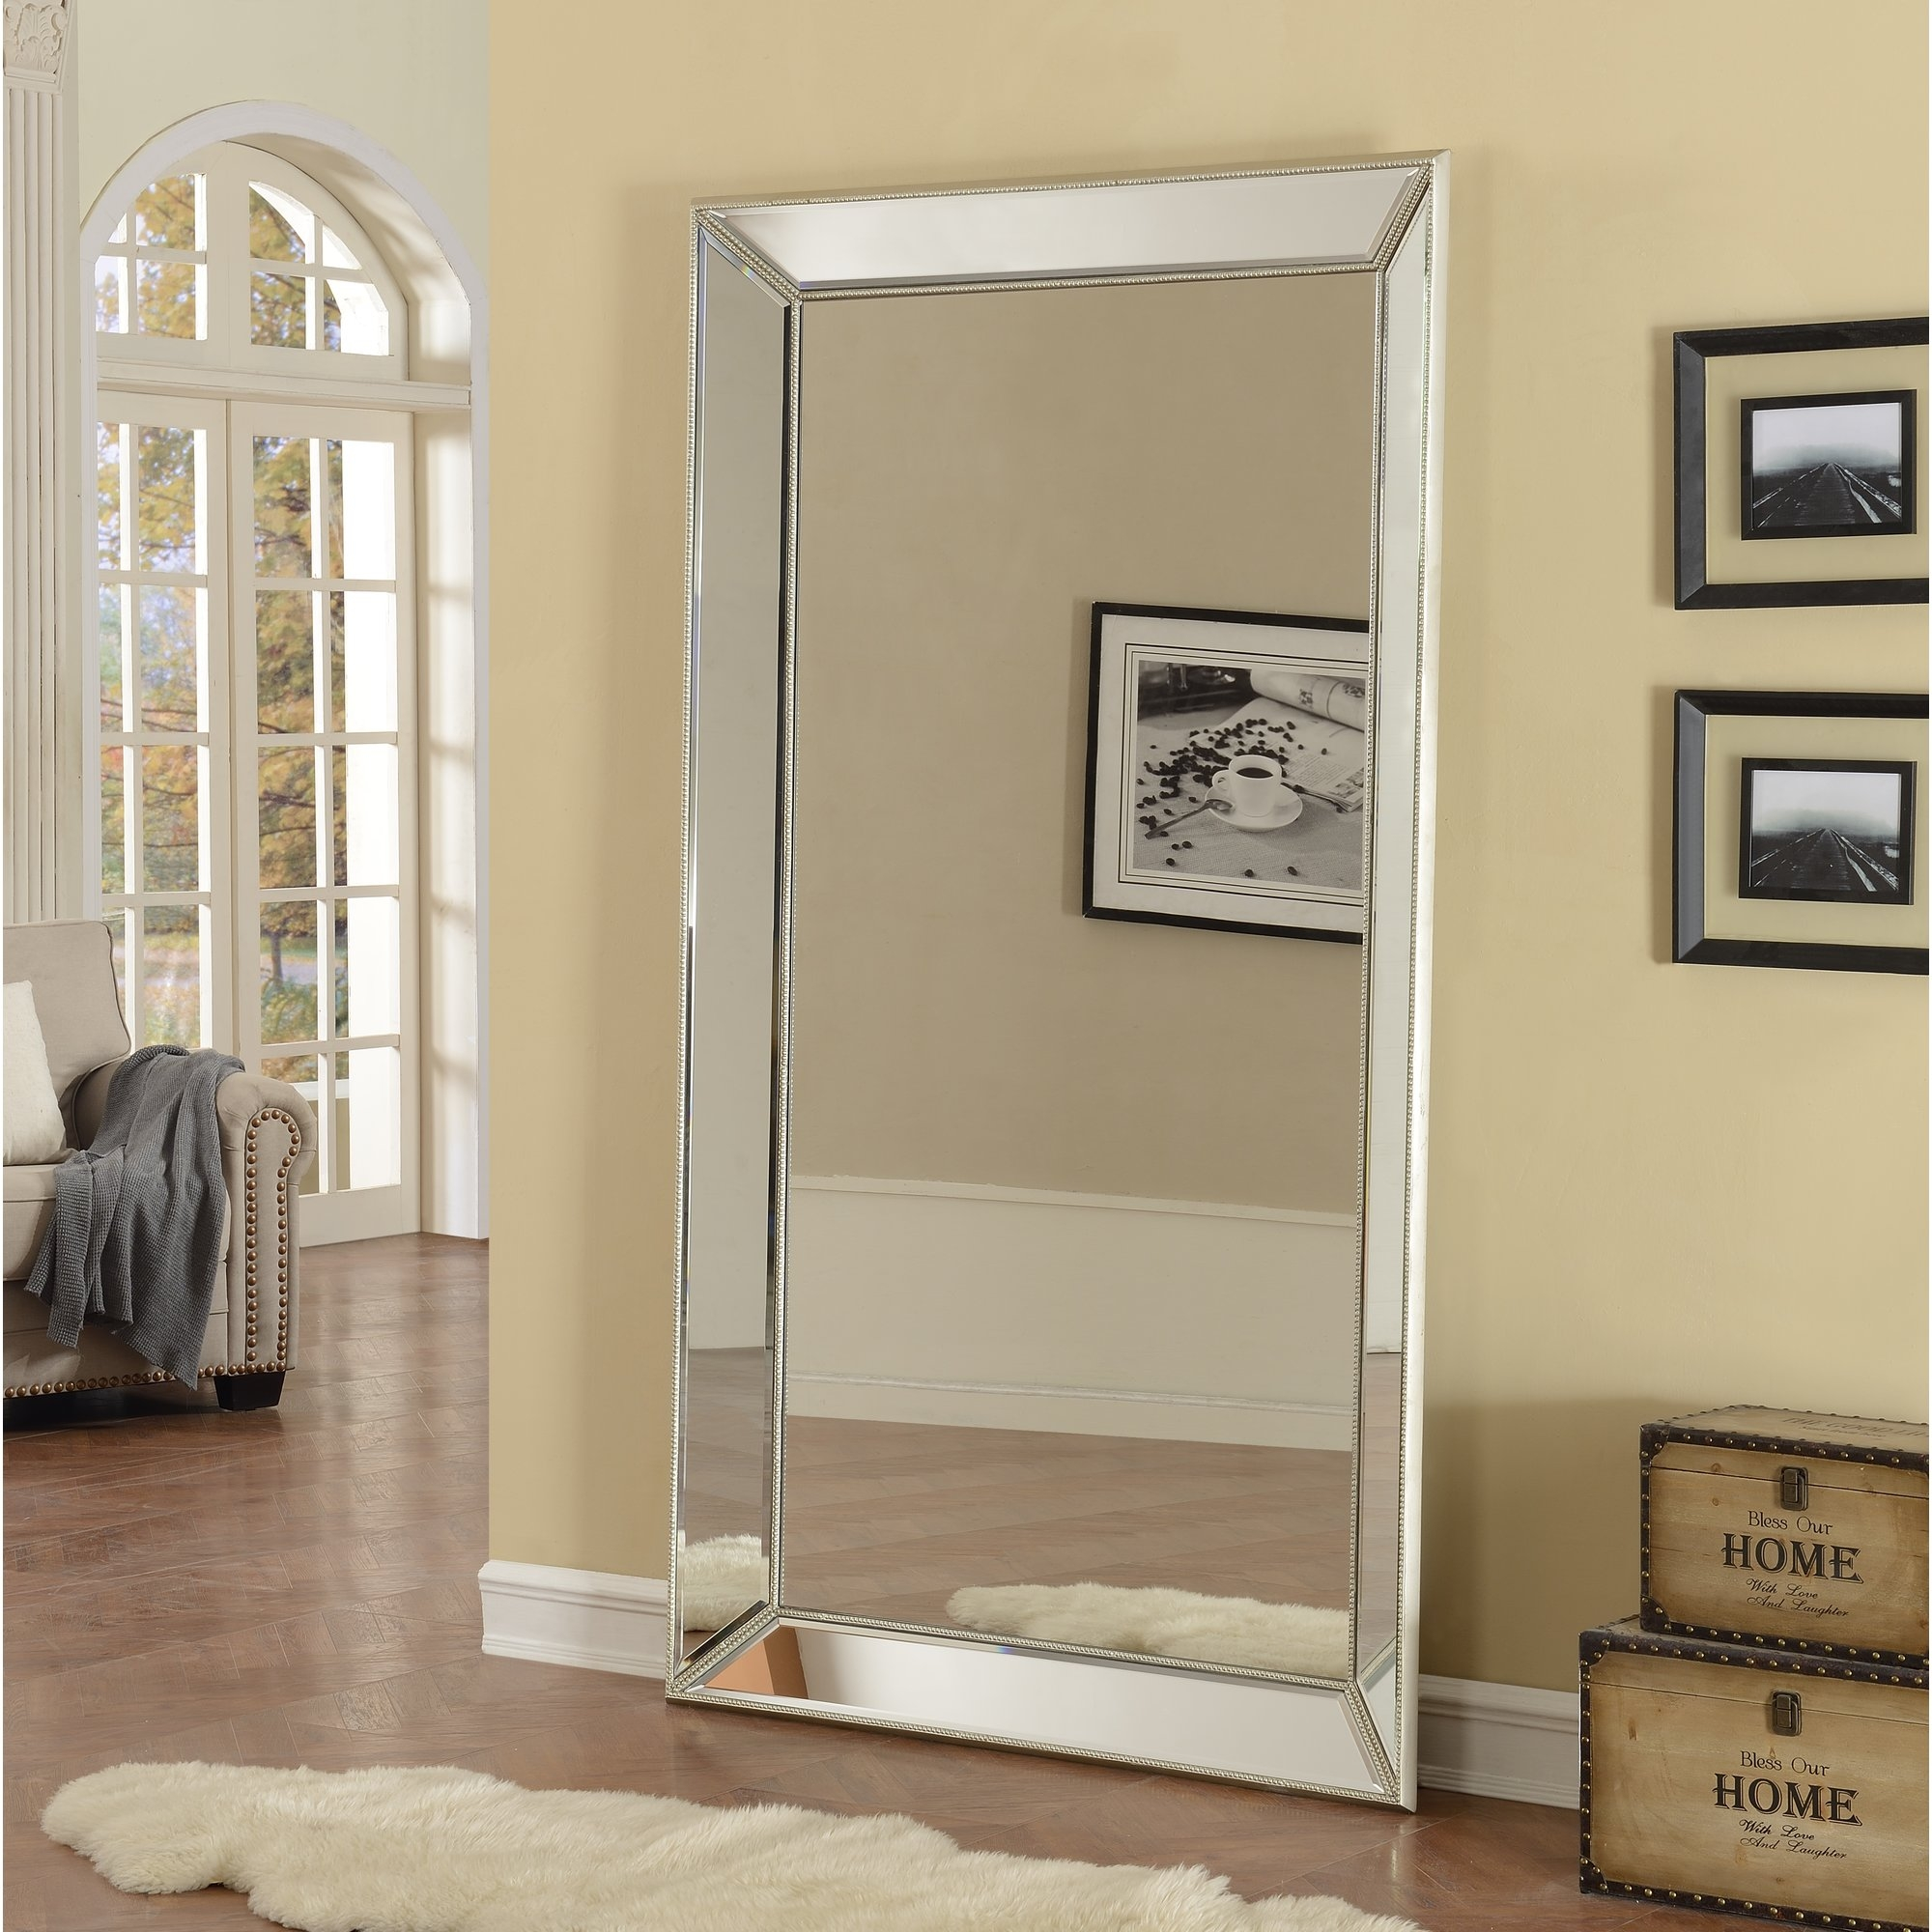 Floor Mirrors Youll Love Wayfair Intended For Large Standing Mirrors (Image 6 of 15)